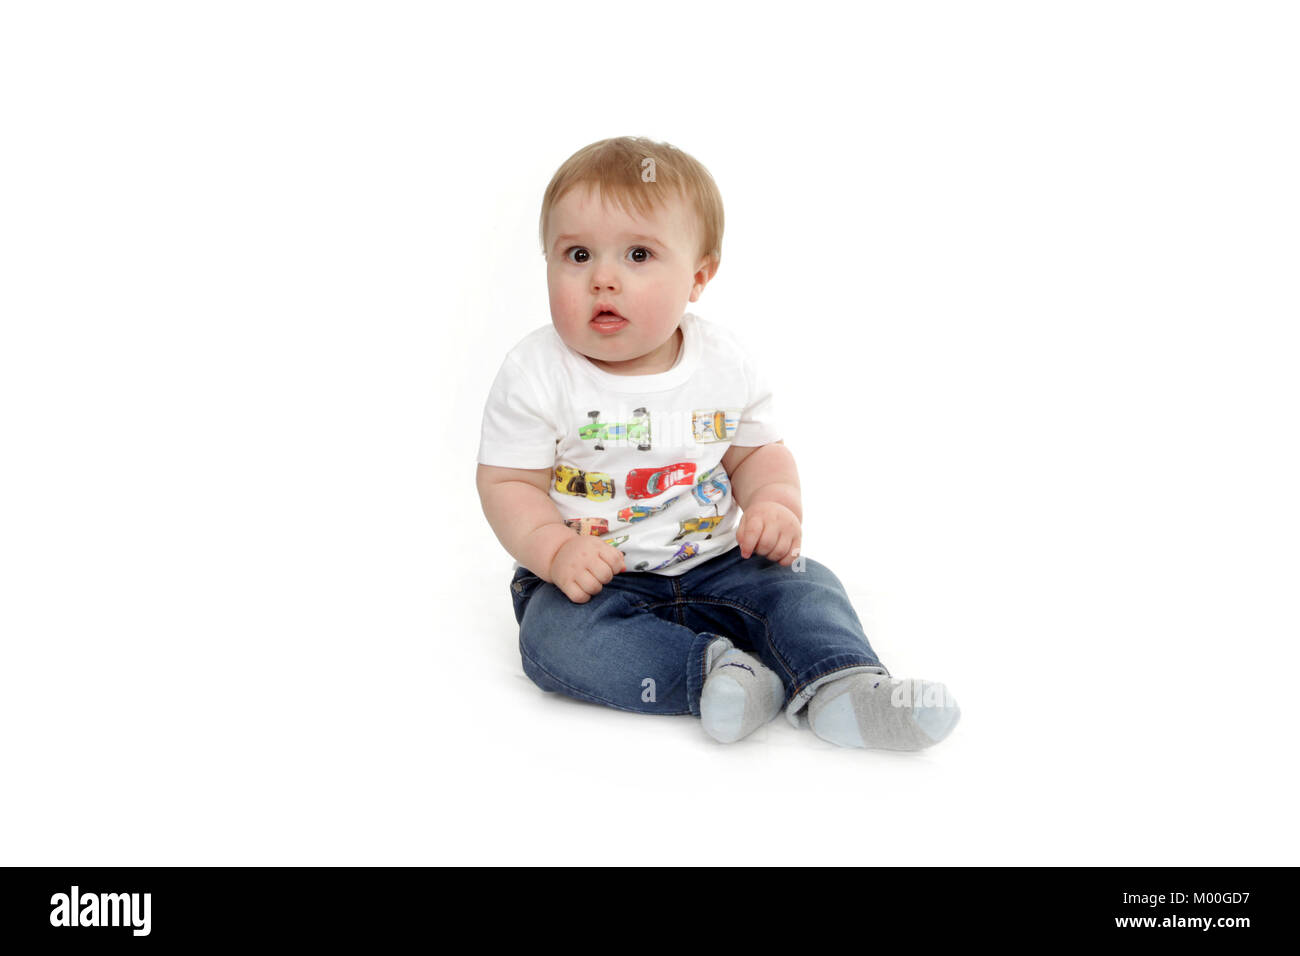 1 year old disabled child, lurning difficulty, child development - Stock Image